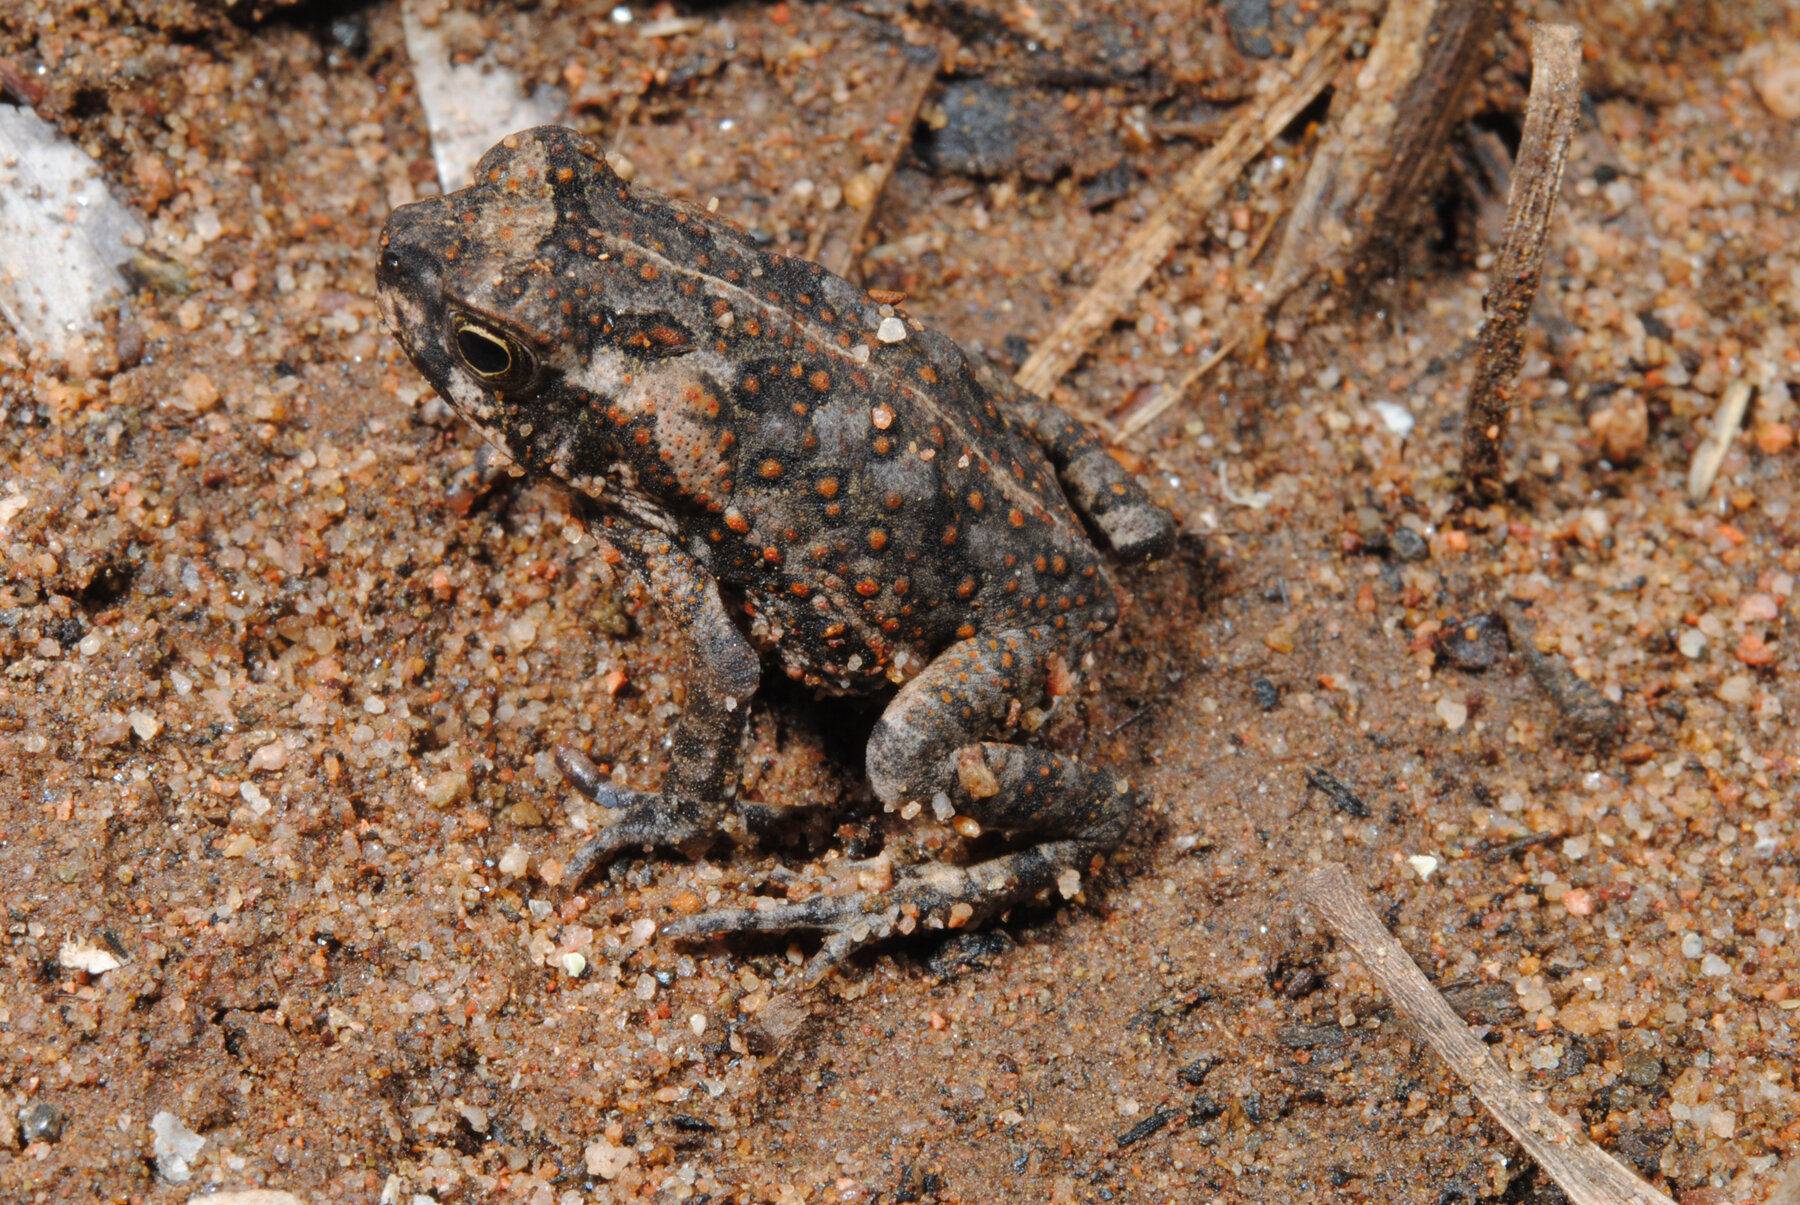 Cane toads: What they do in the shadows